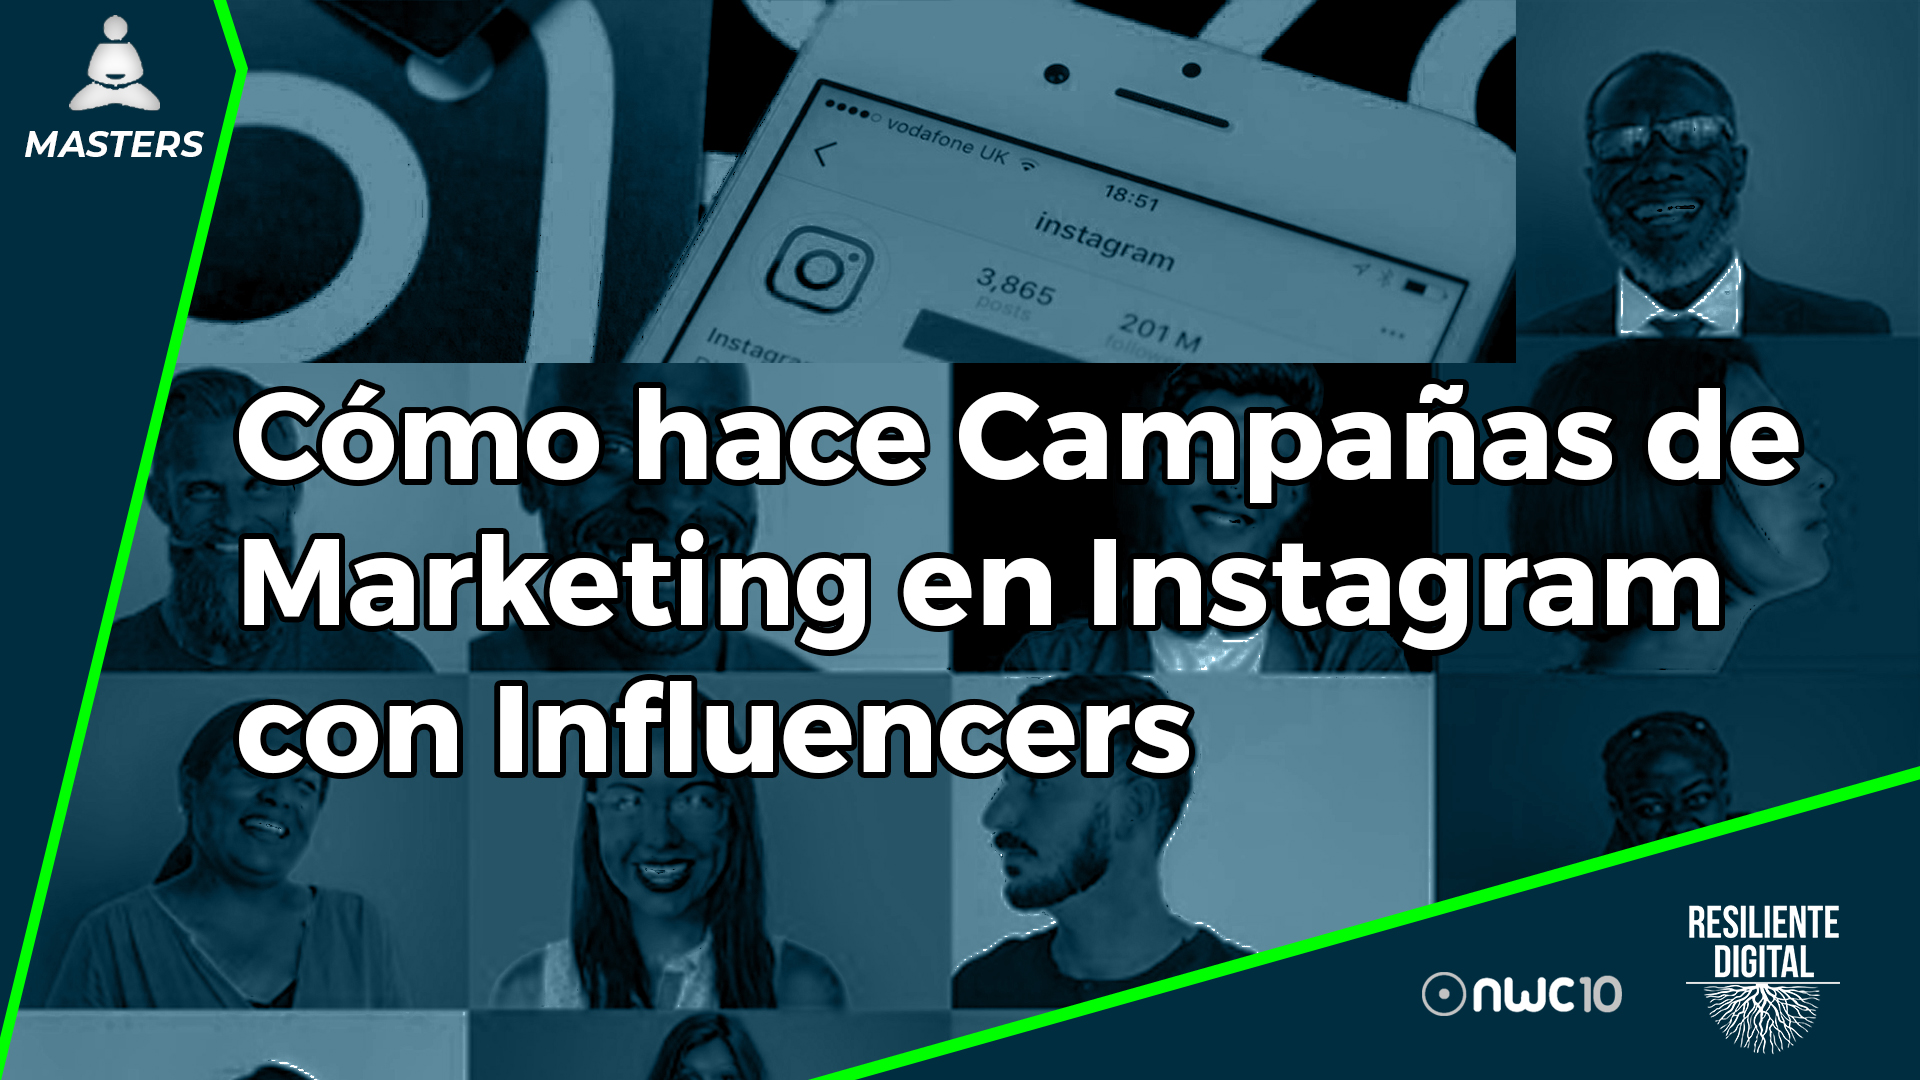 Cómo hacer campañas de marketing en Instagram con influencers